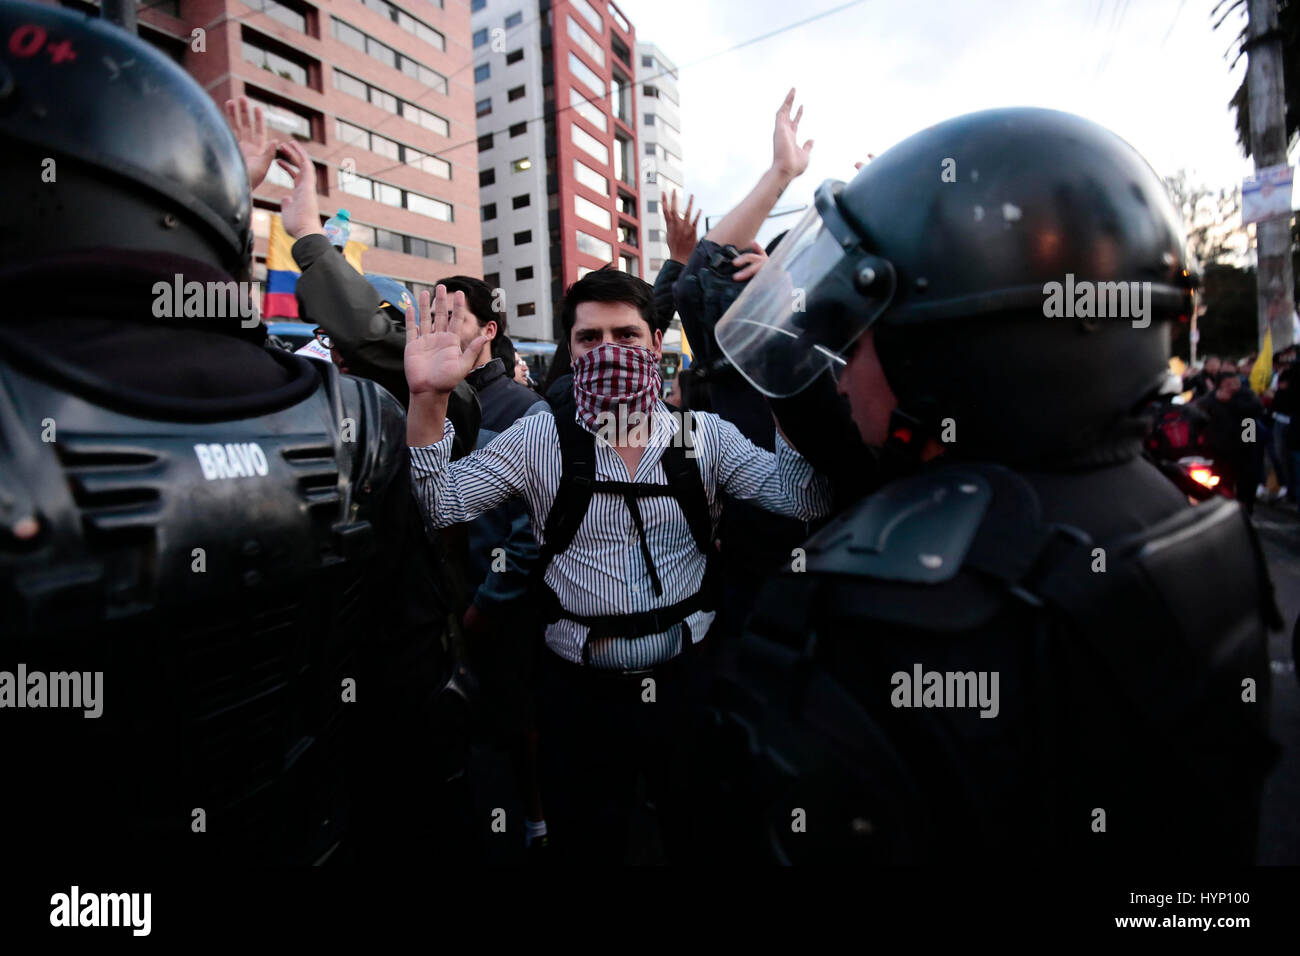 Quito, Ecuador. 06th Apr, 2017. A demonstrator shouts slogans during a protest against Ecuadorian presidential electoral - Stock Image